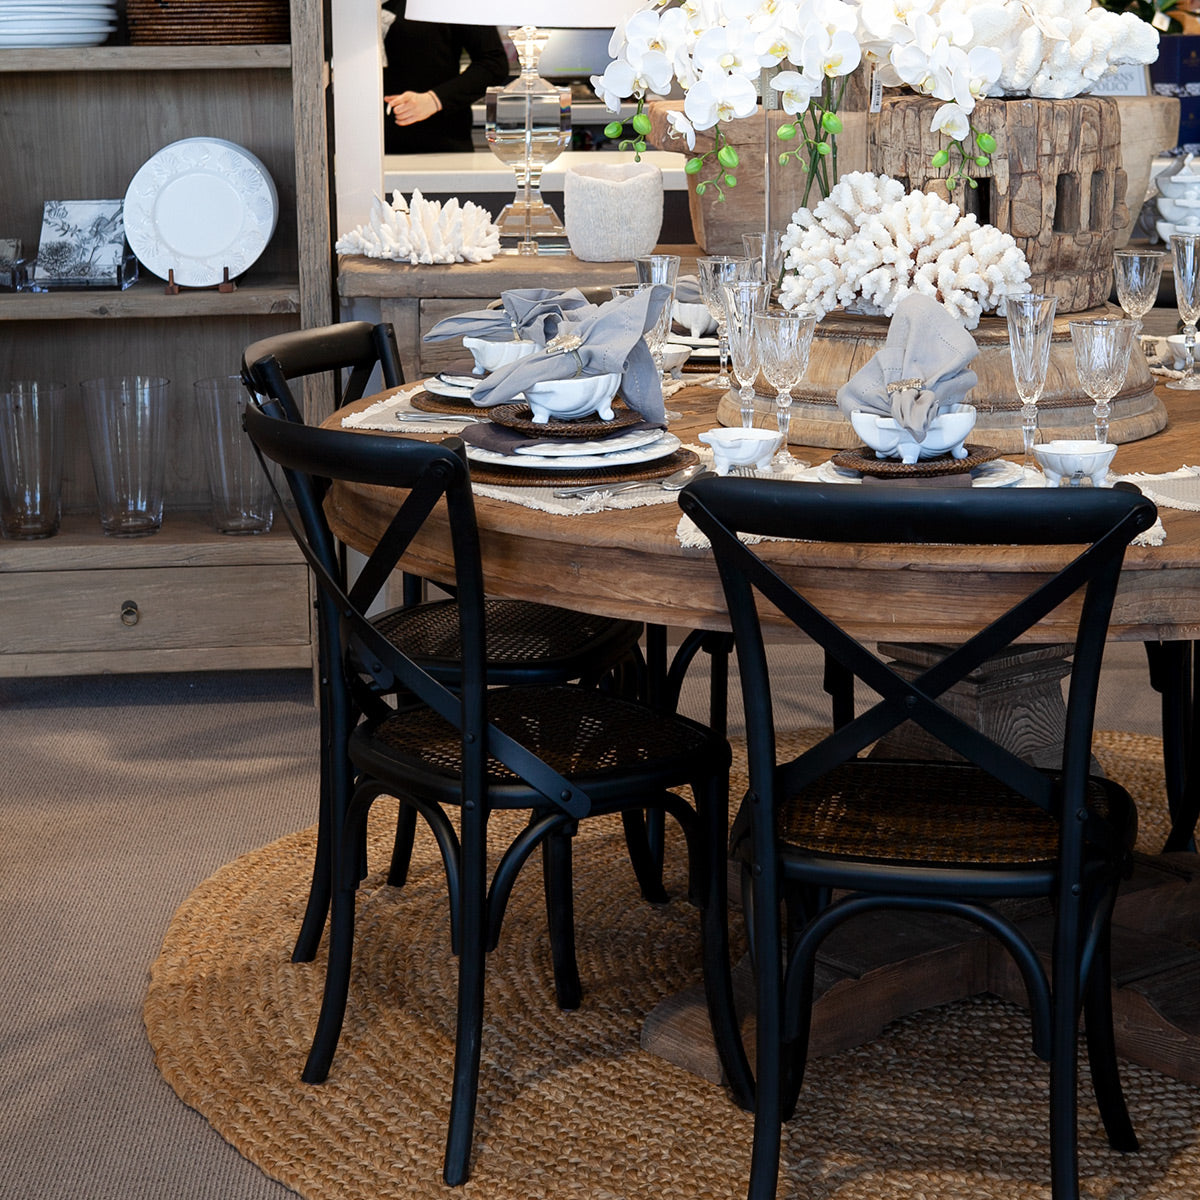 Old elm round dining table with coastal plates.